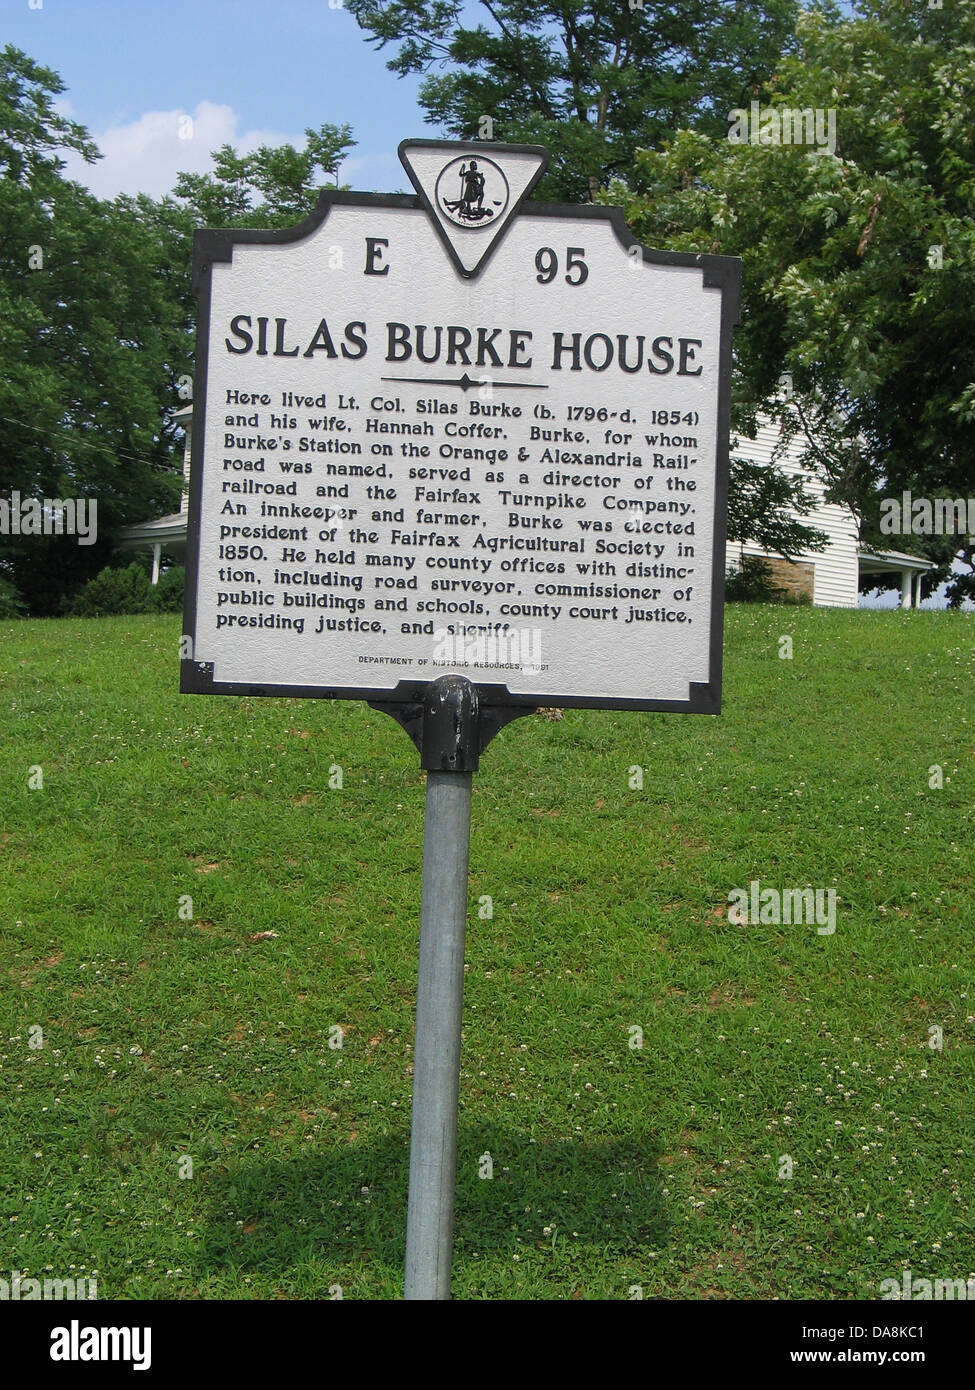 SILAS BURKE HOUSE Here lived Lt. Col Silas Burke (b. 1796-d. 1854) and his wife, Hannah Coffer. Burke, for whom - Stock Image